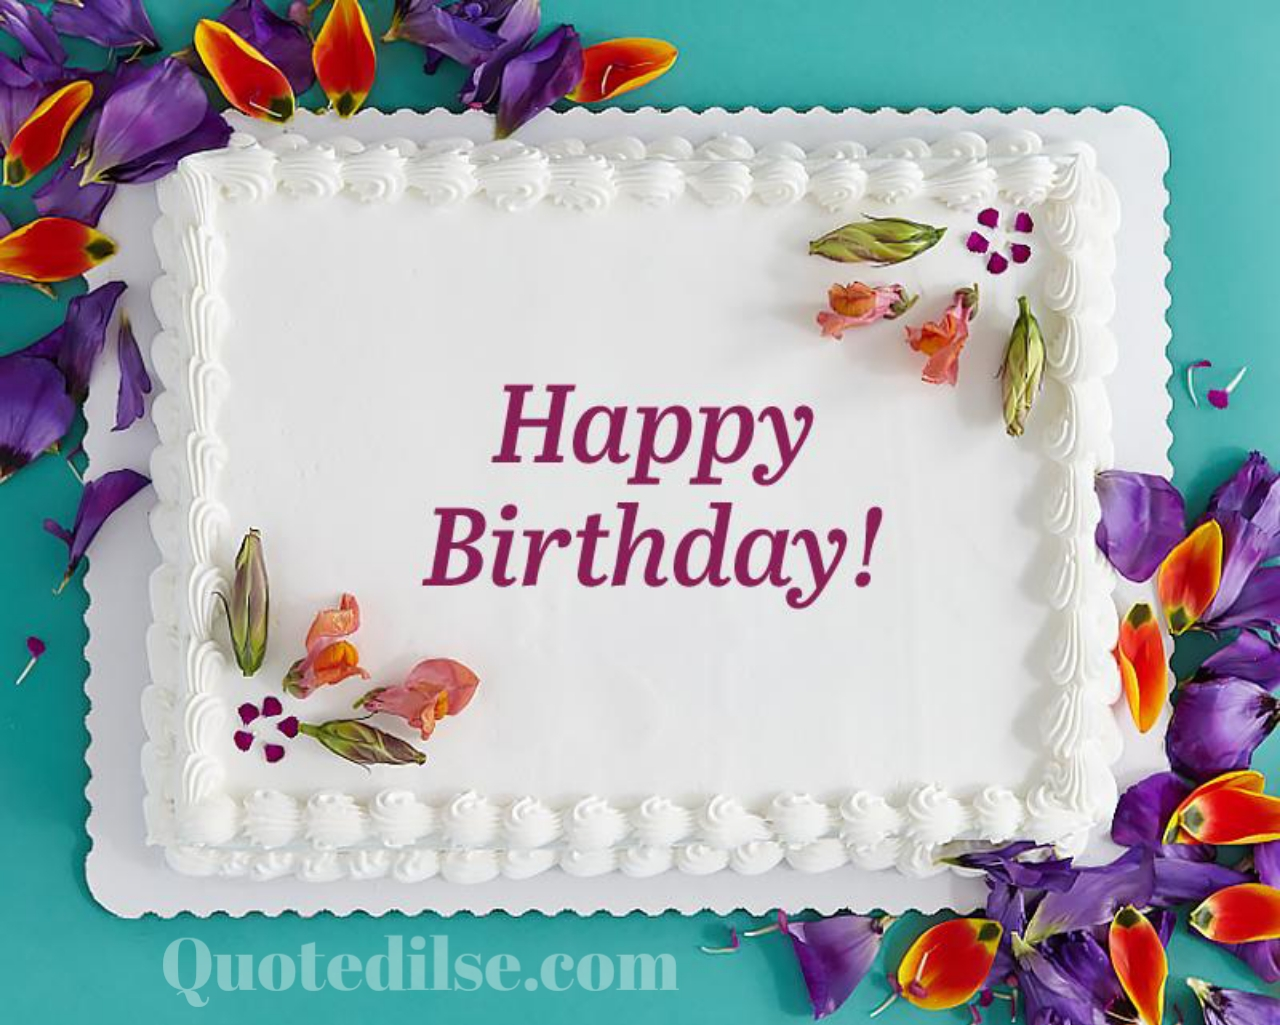 Sensational Birthday Cake Images With Quotes Funny Birthday Cards Online Alyptdamsfinfo